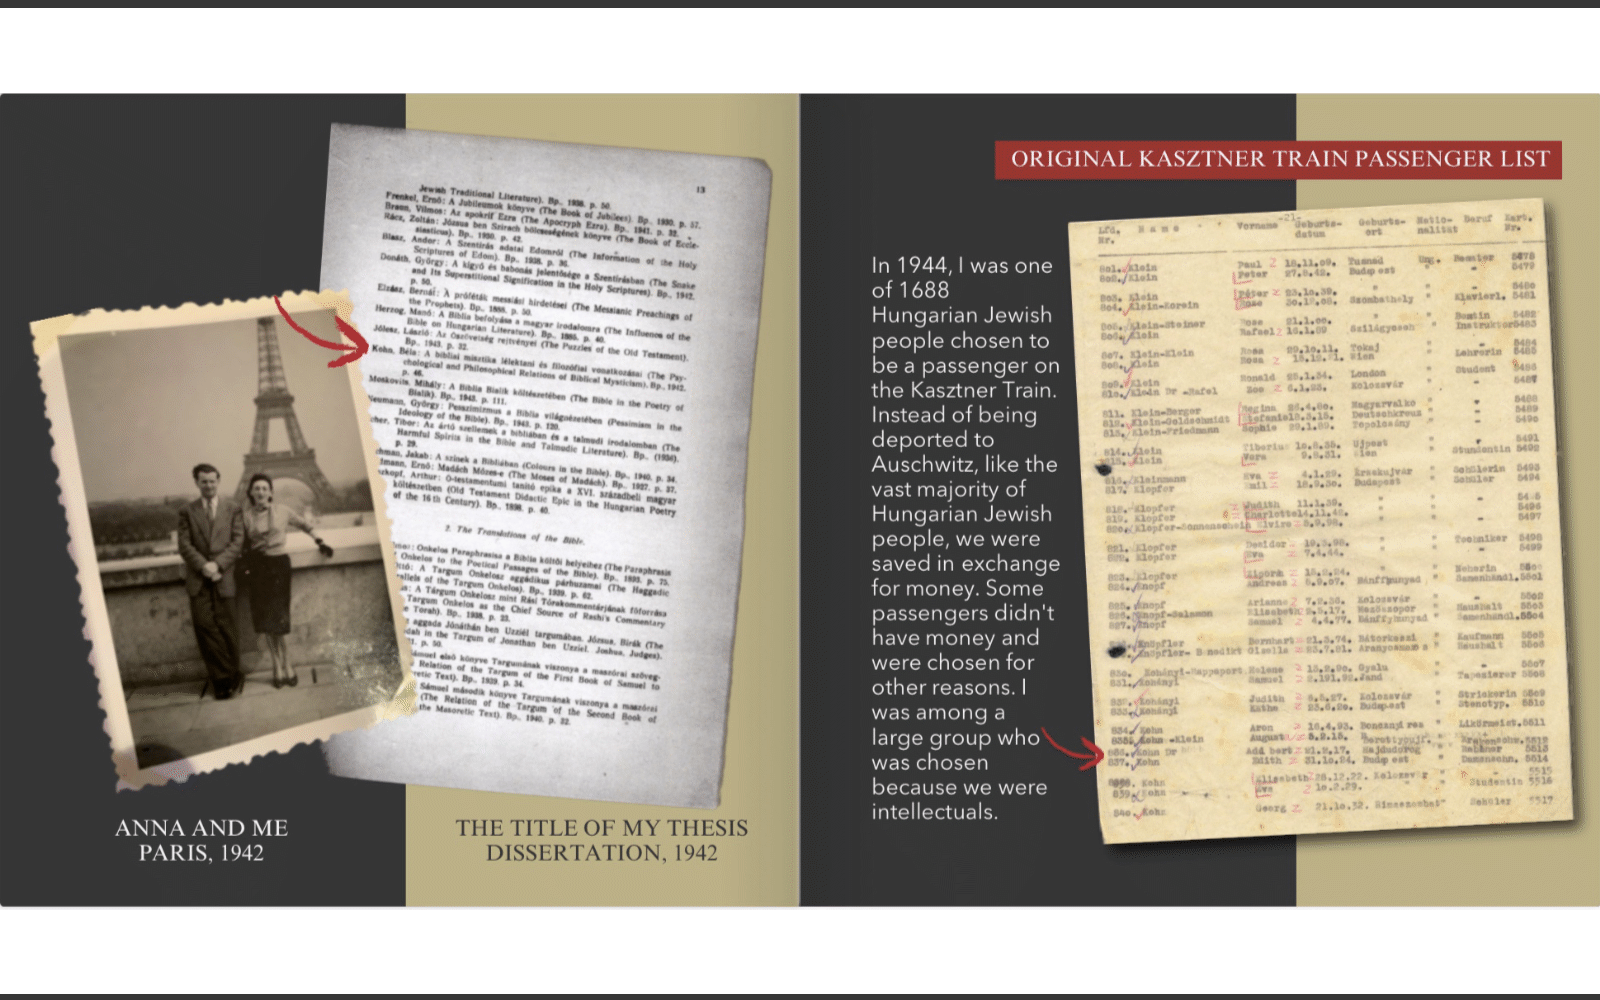 Page layout showing two documents with explanatory text.